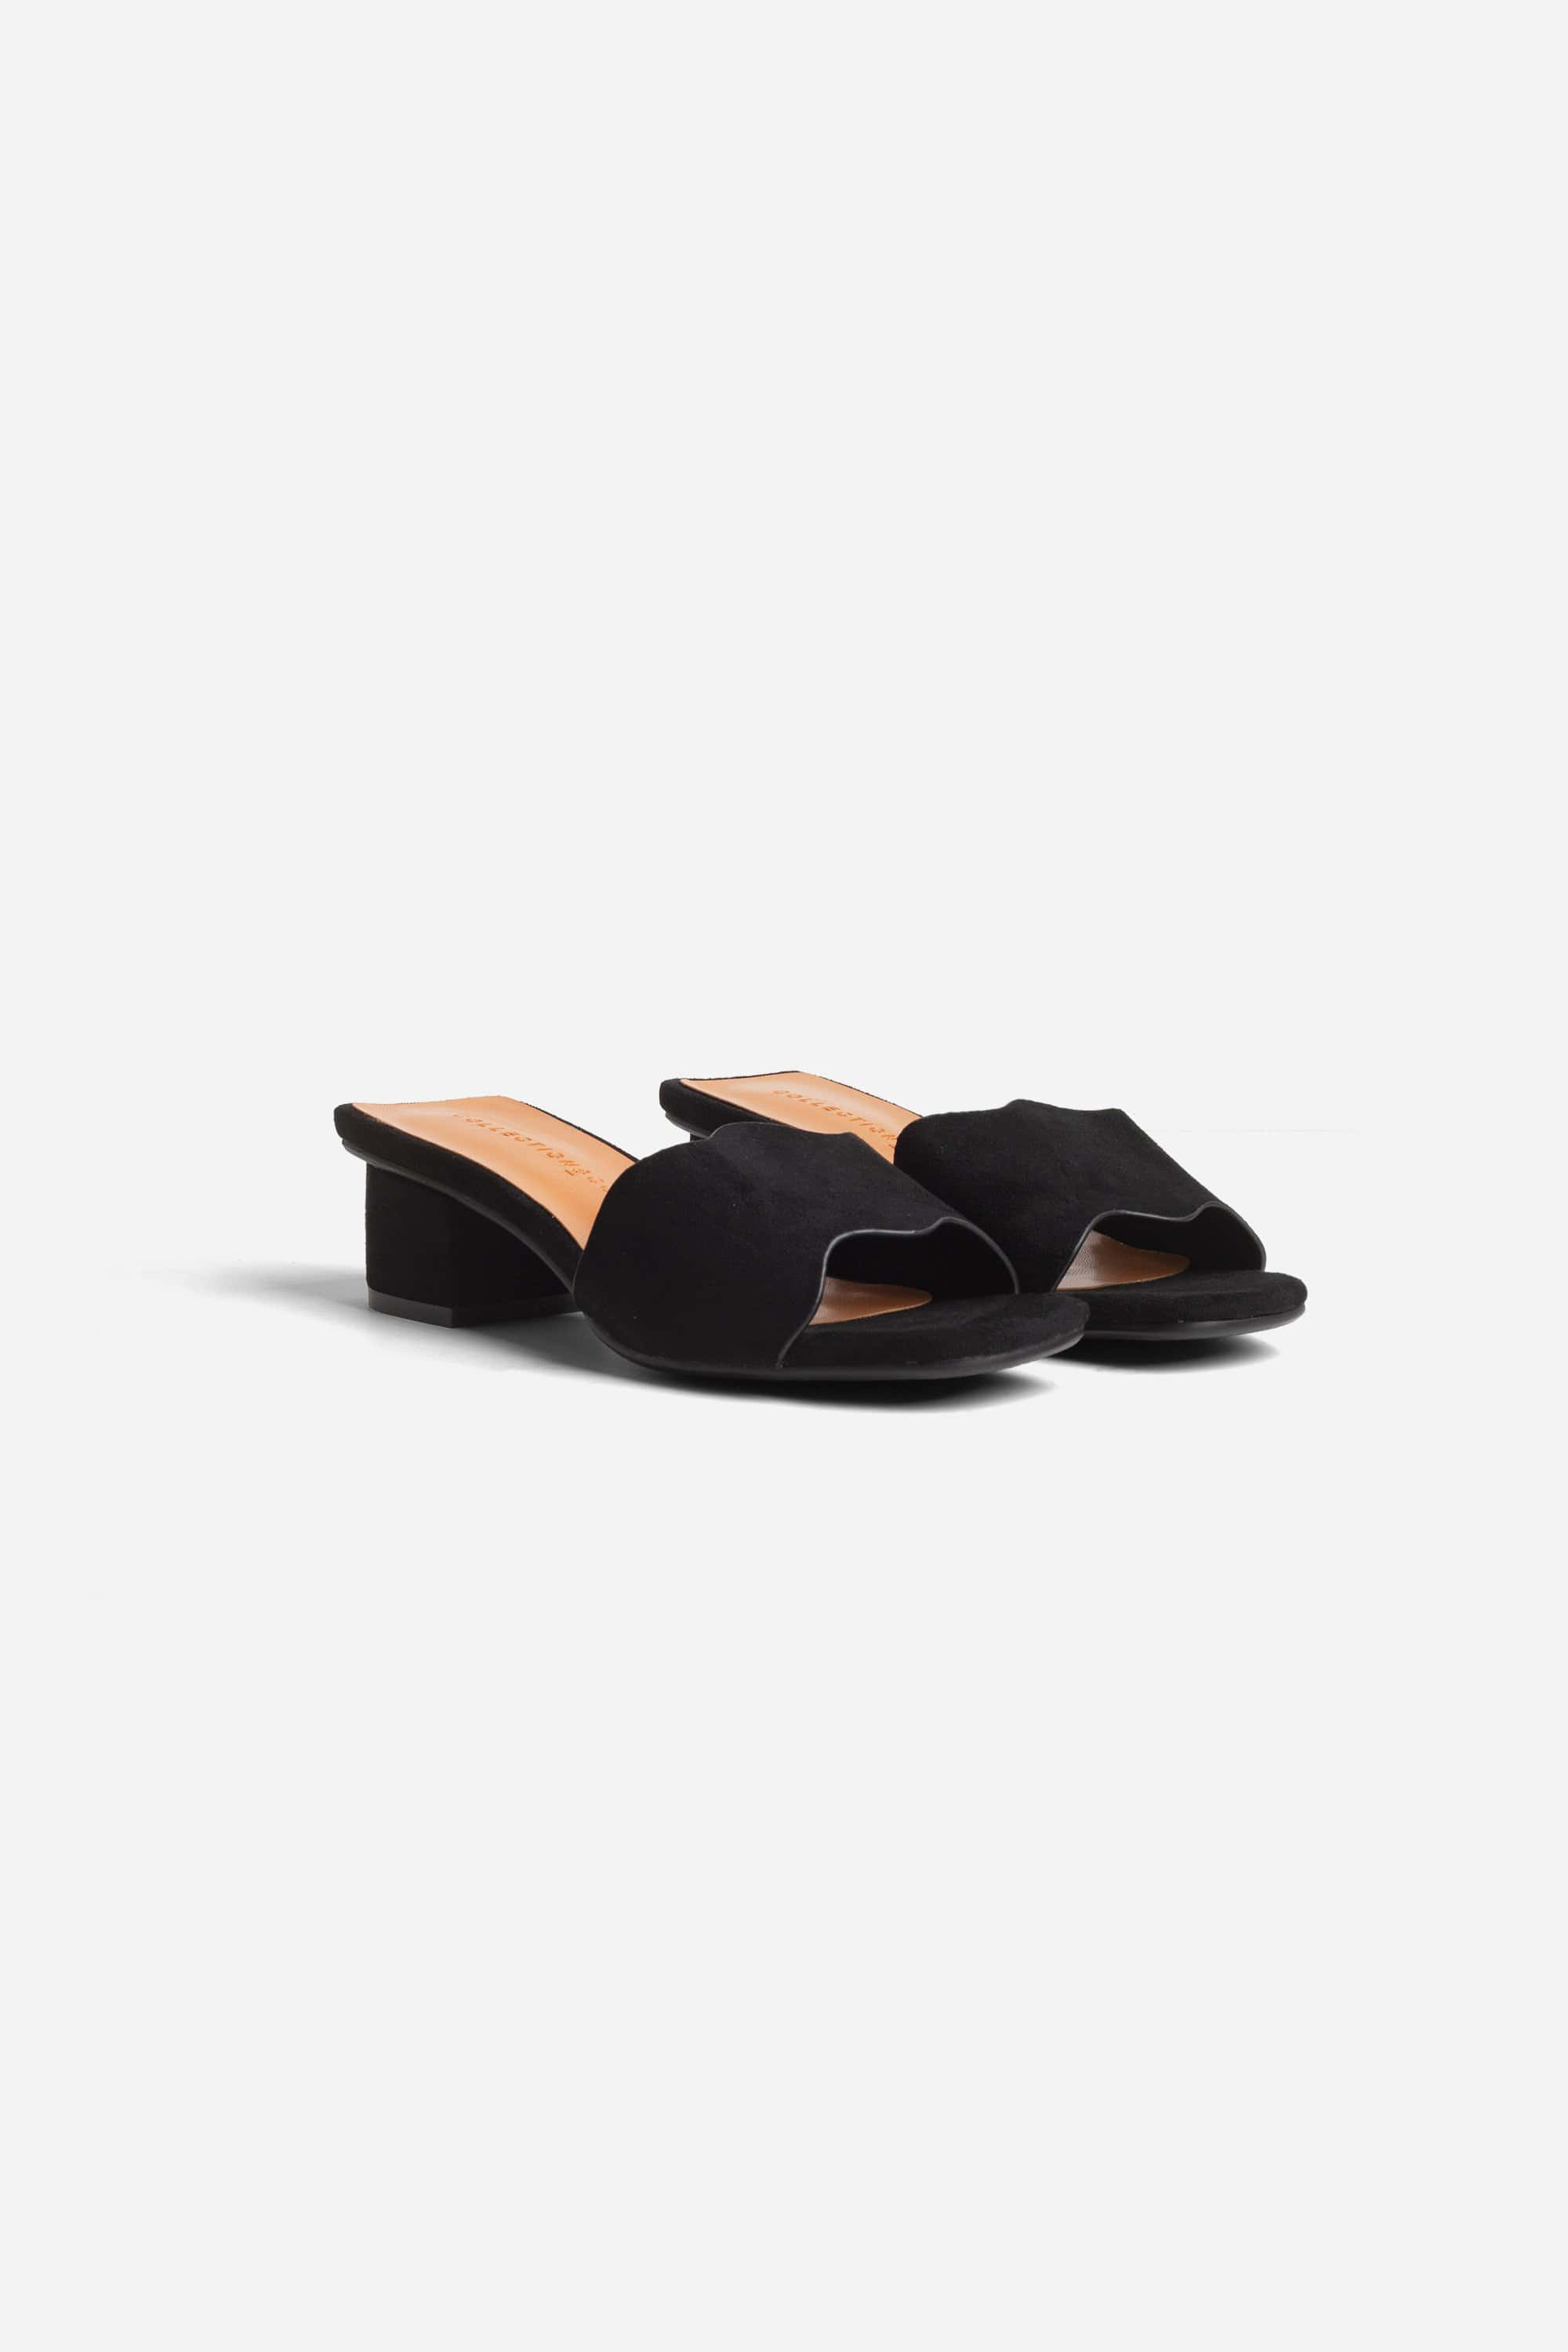 Collection & Co Kitty Up-Cycled Vegan Suede Mule   Black